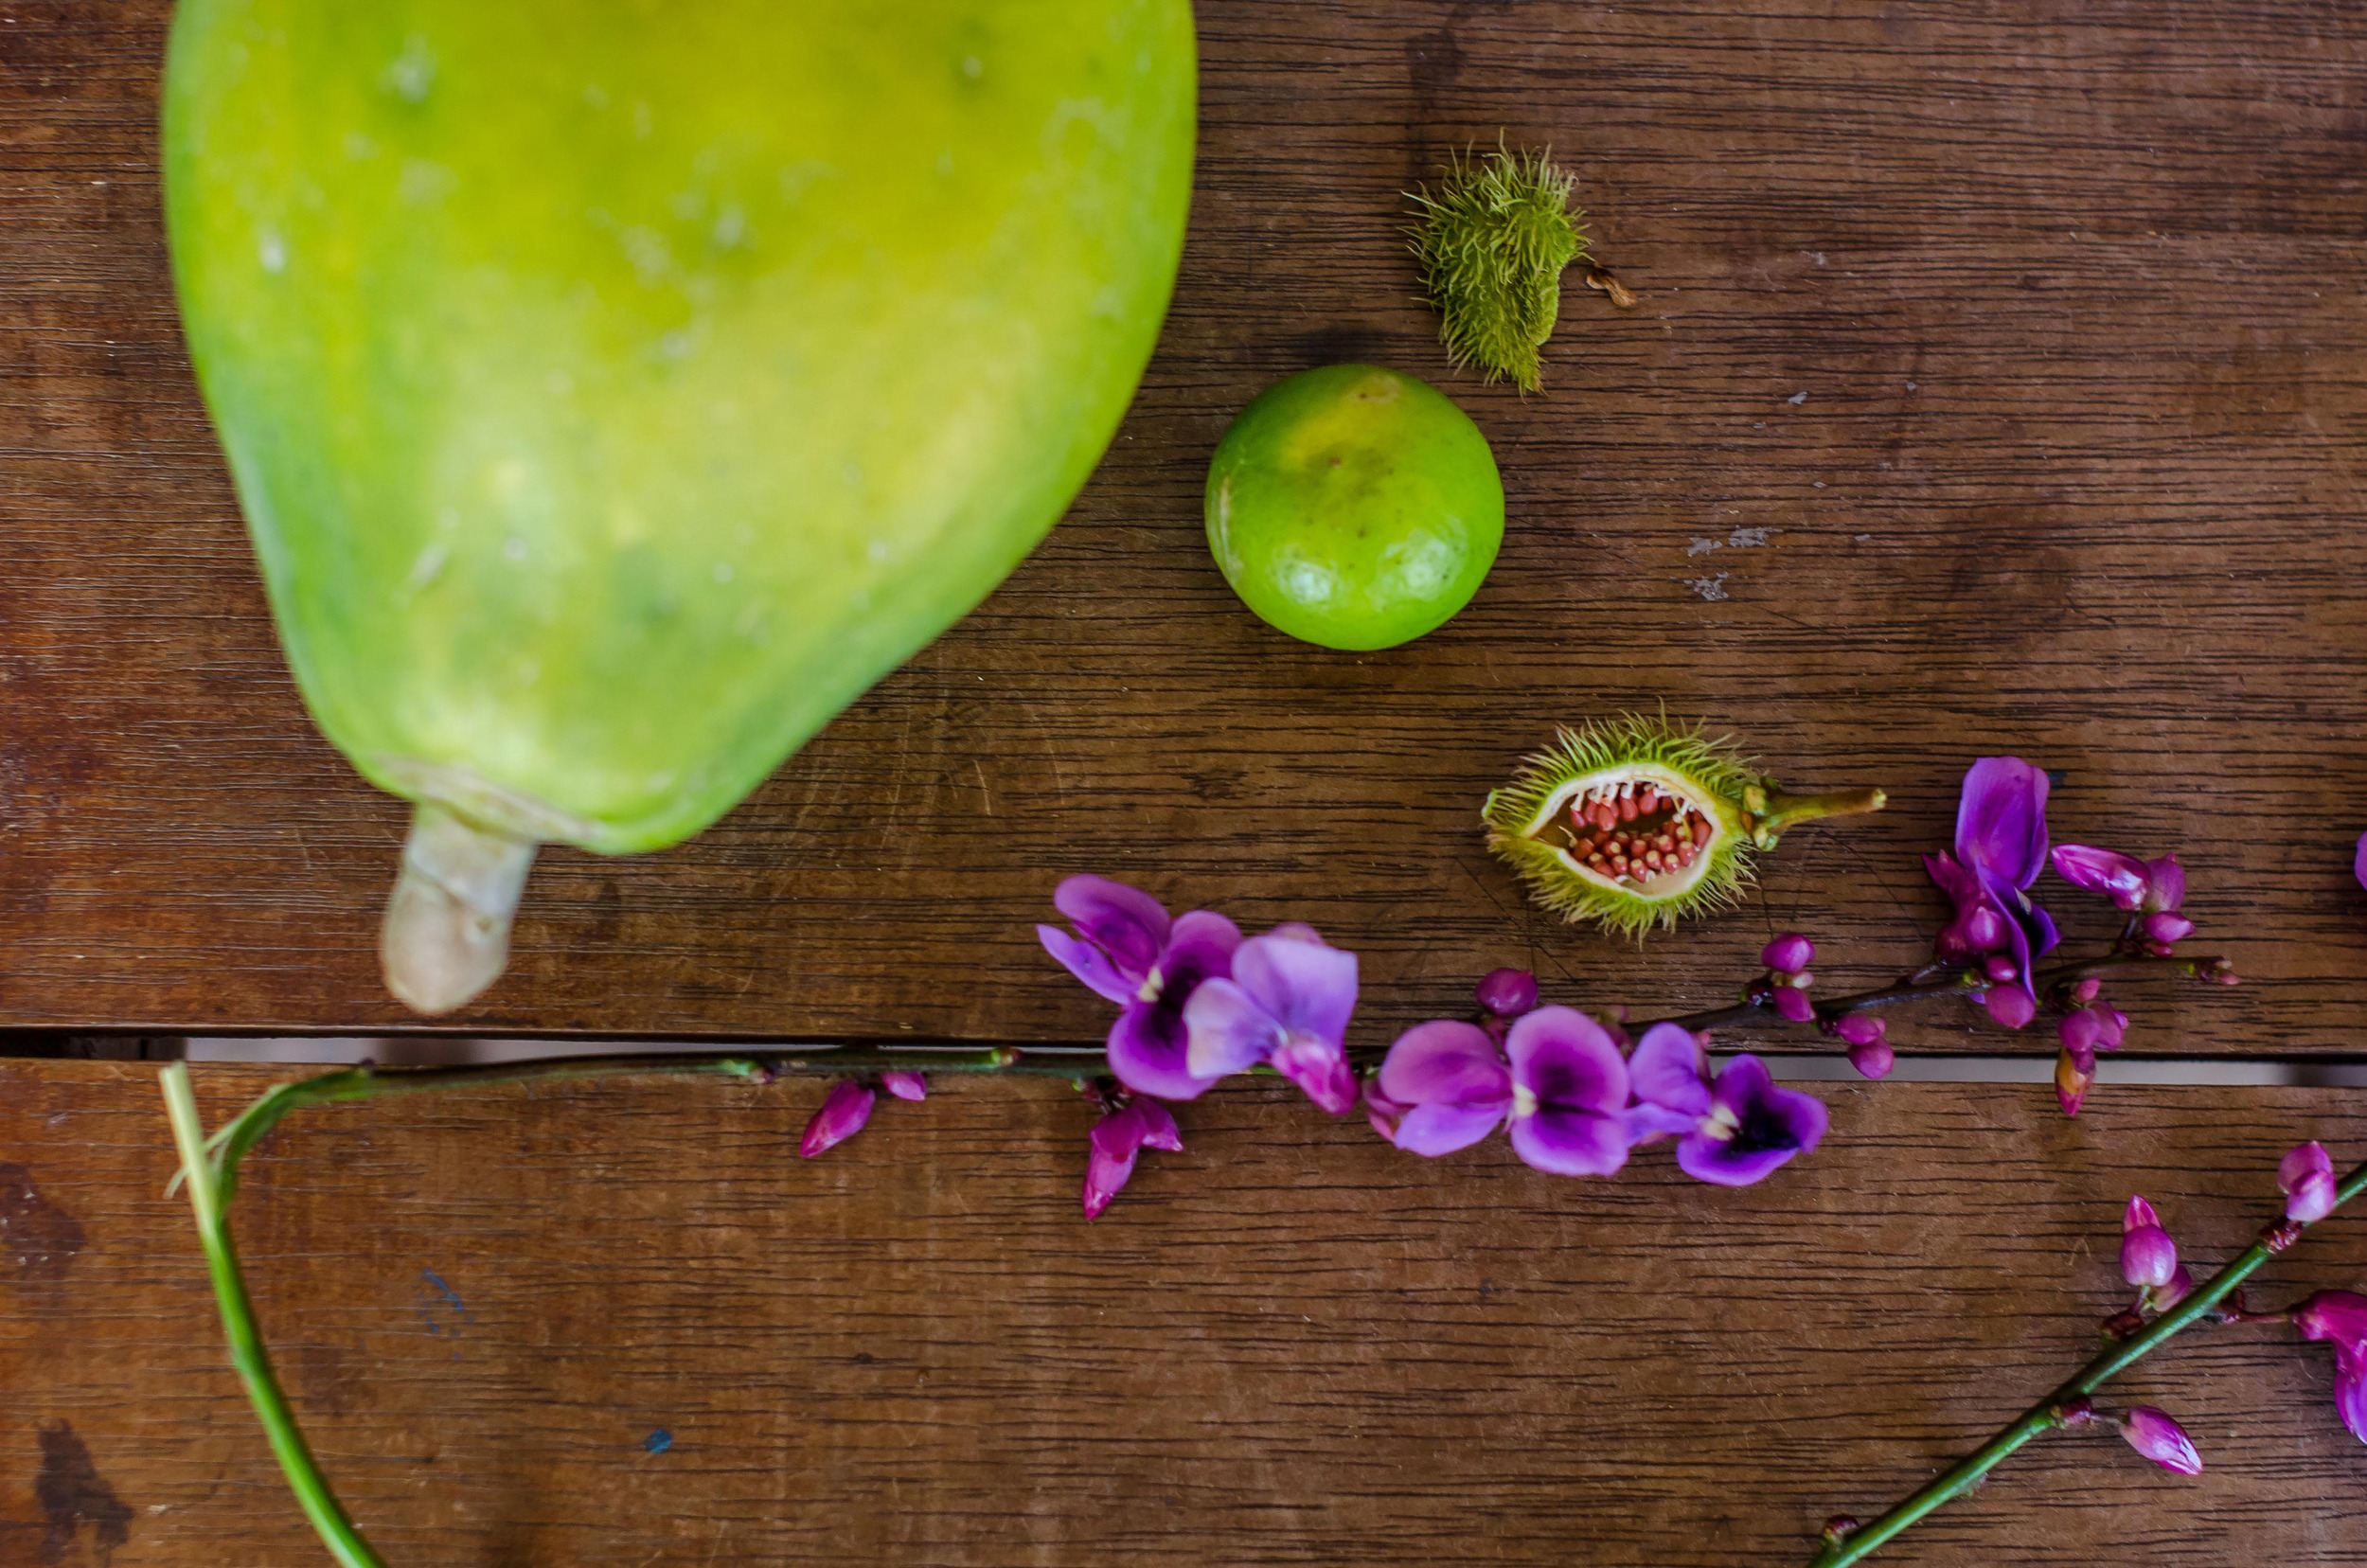 Wild papaya, lime, flowers, and urucum (the fuzzy-looking fruit). Native people used urucum to dye their faces bright red.